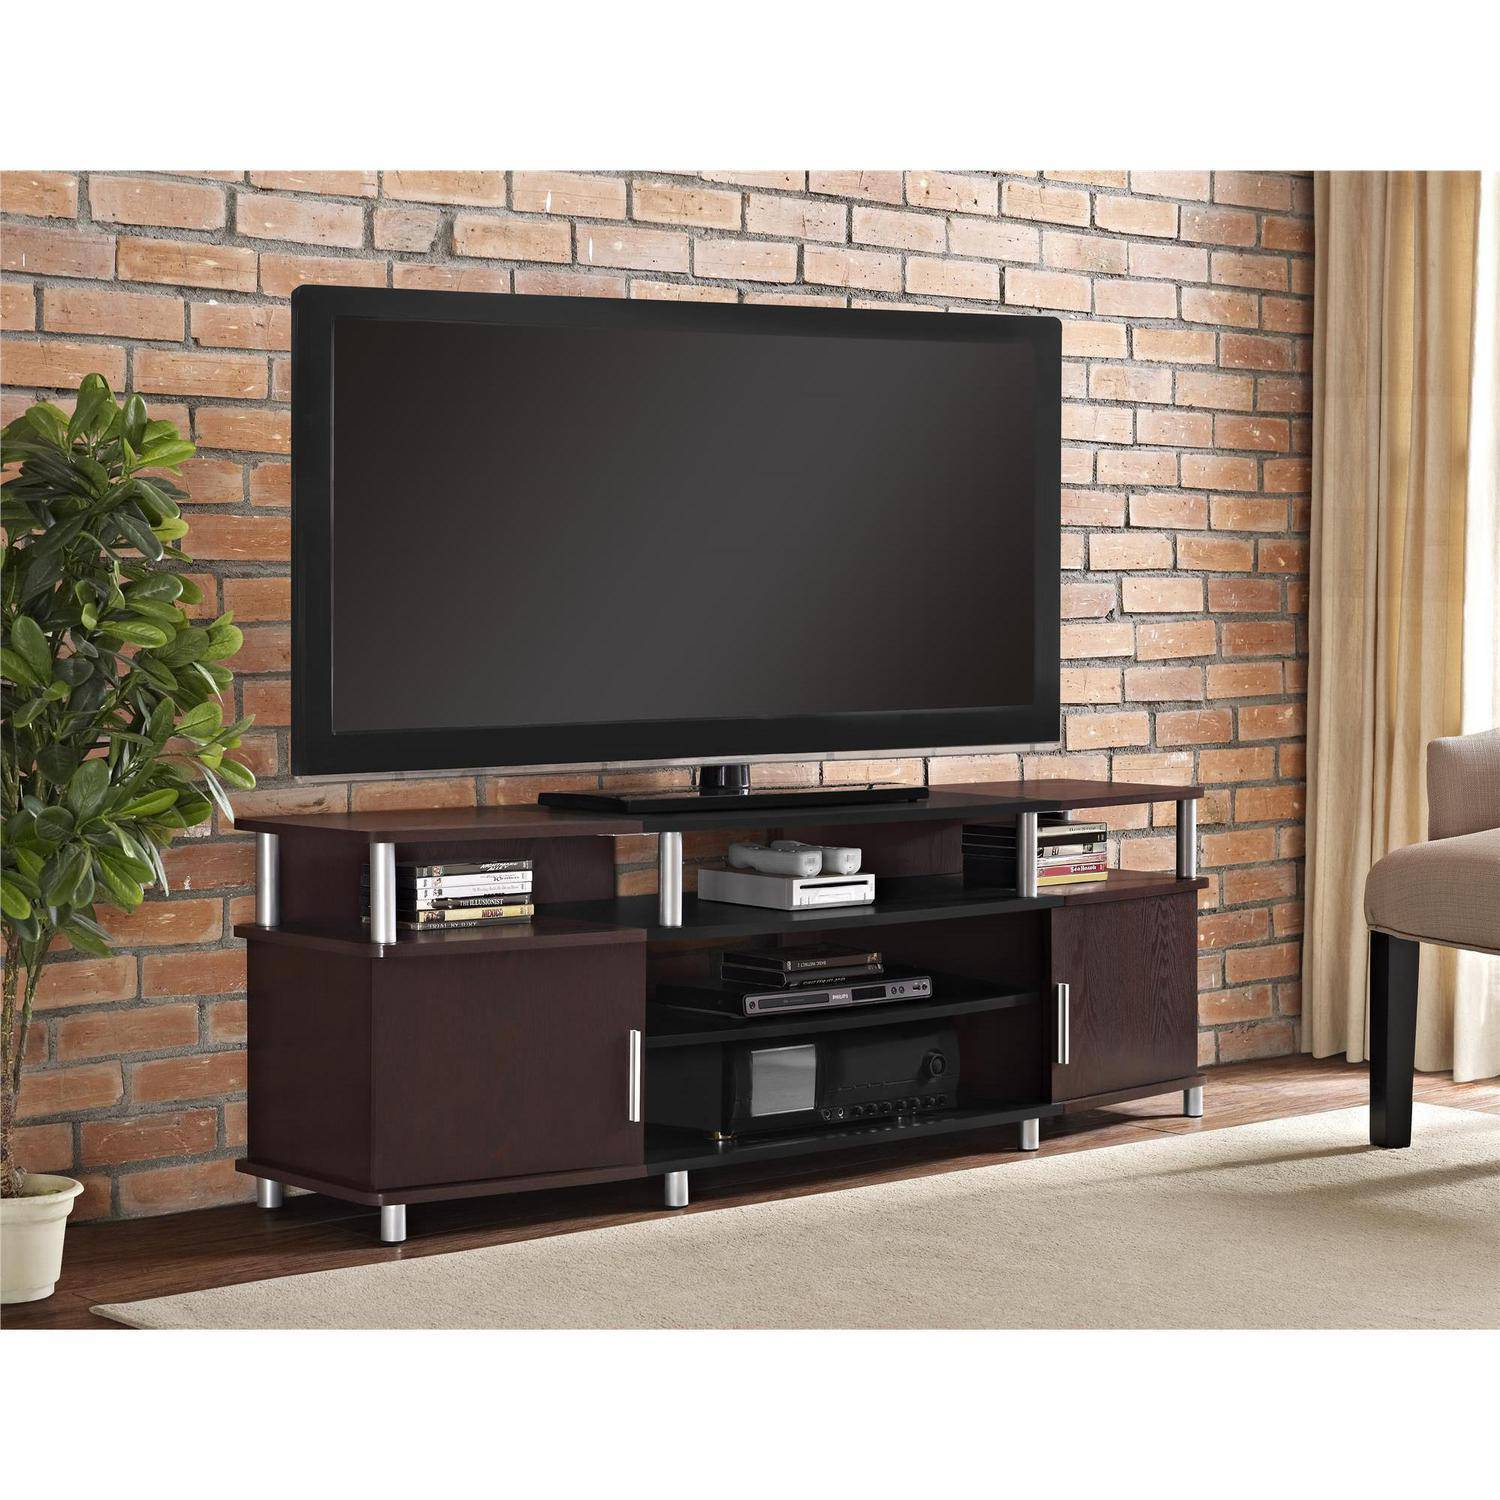 ameriwood home carson tv stand for tvs up to 70 wide cherry ebay. Black Bedroom Furniture Sets. Home Design Ideas